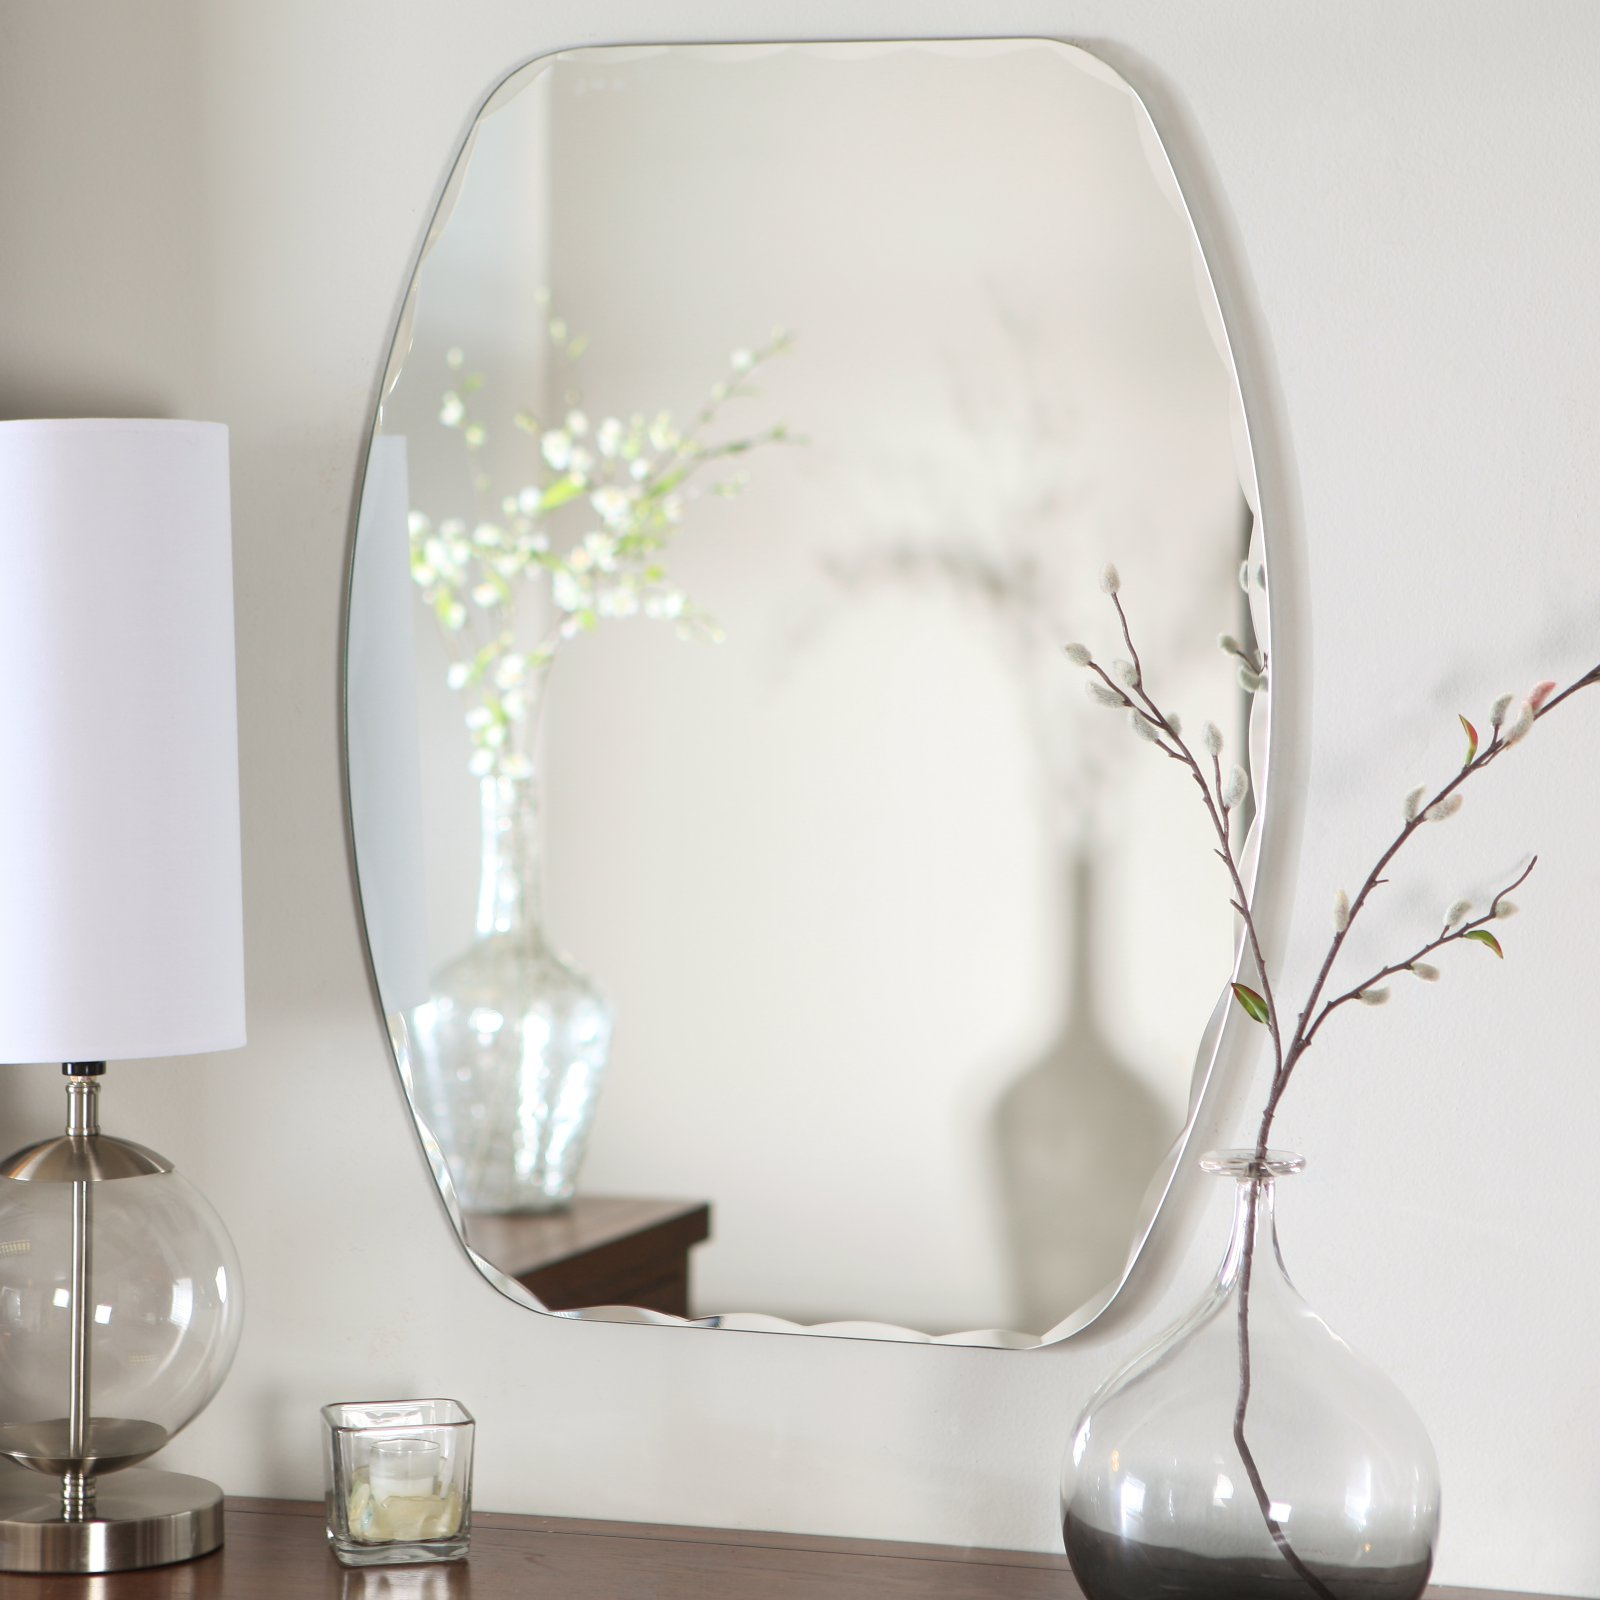 Décor Wonderland Frameless Freddie Wall Mirror 23.5W x 32.5H in. by Decor Wonderland of US